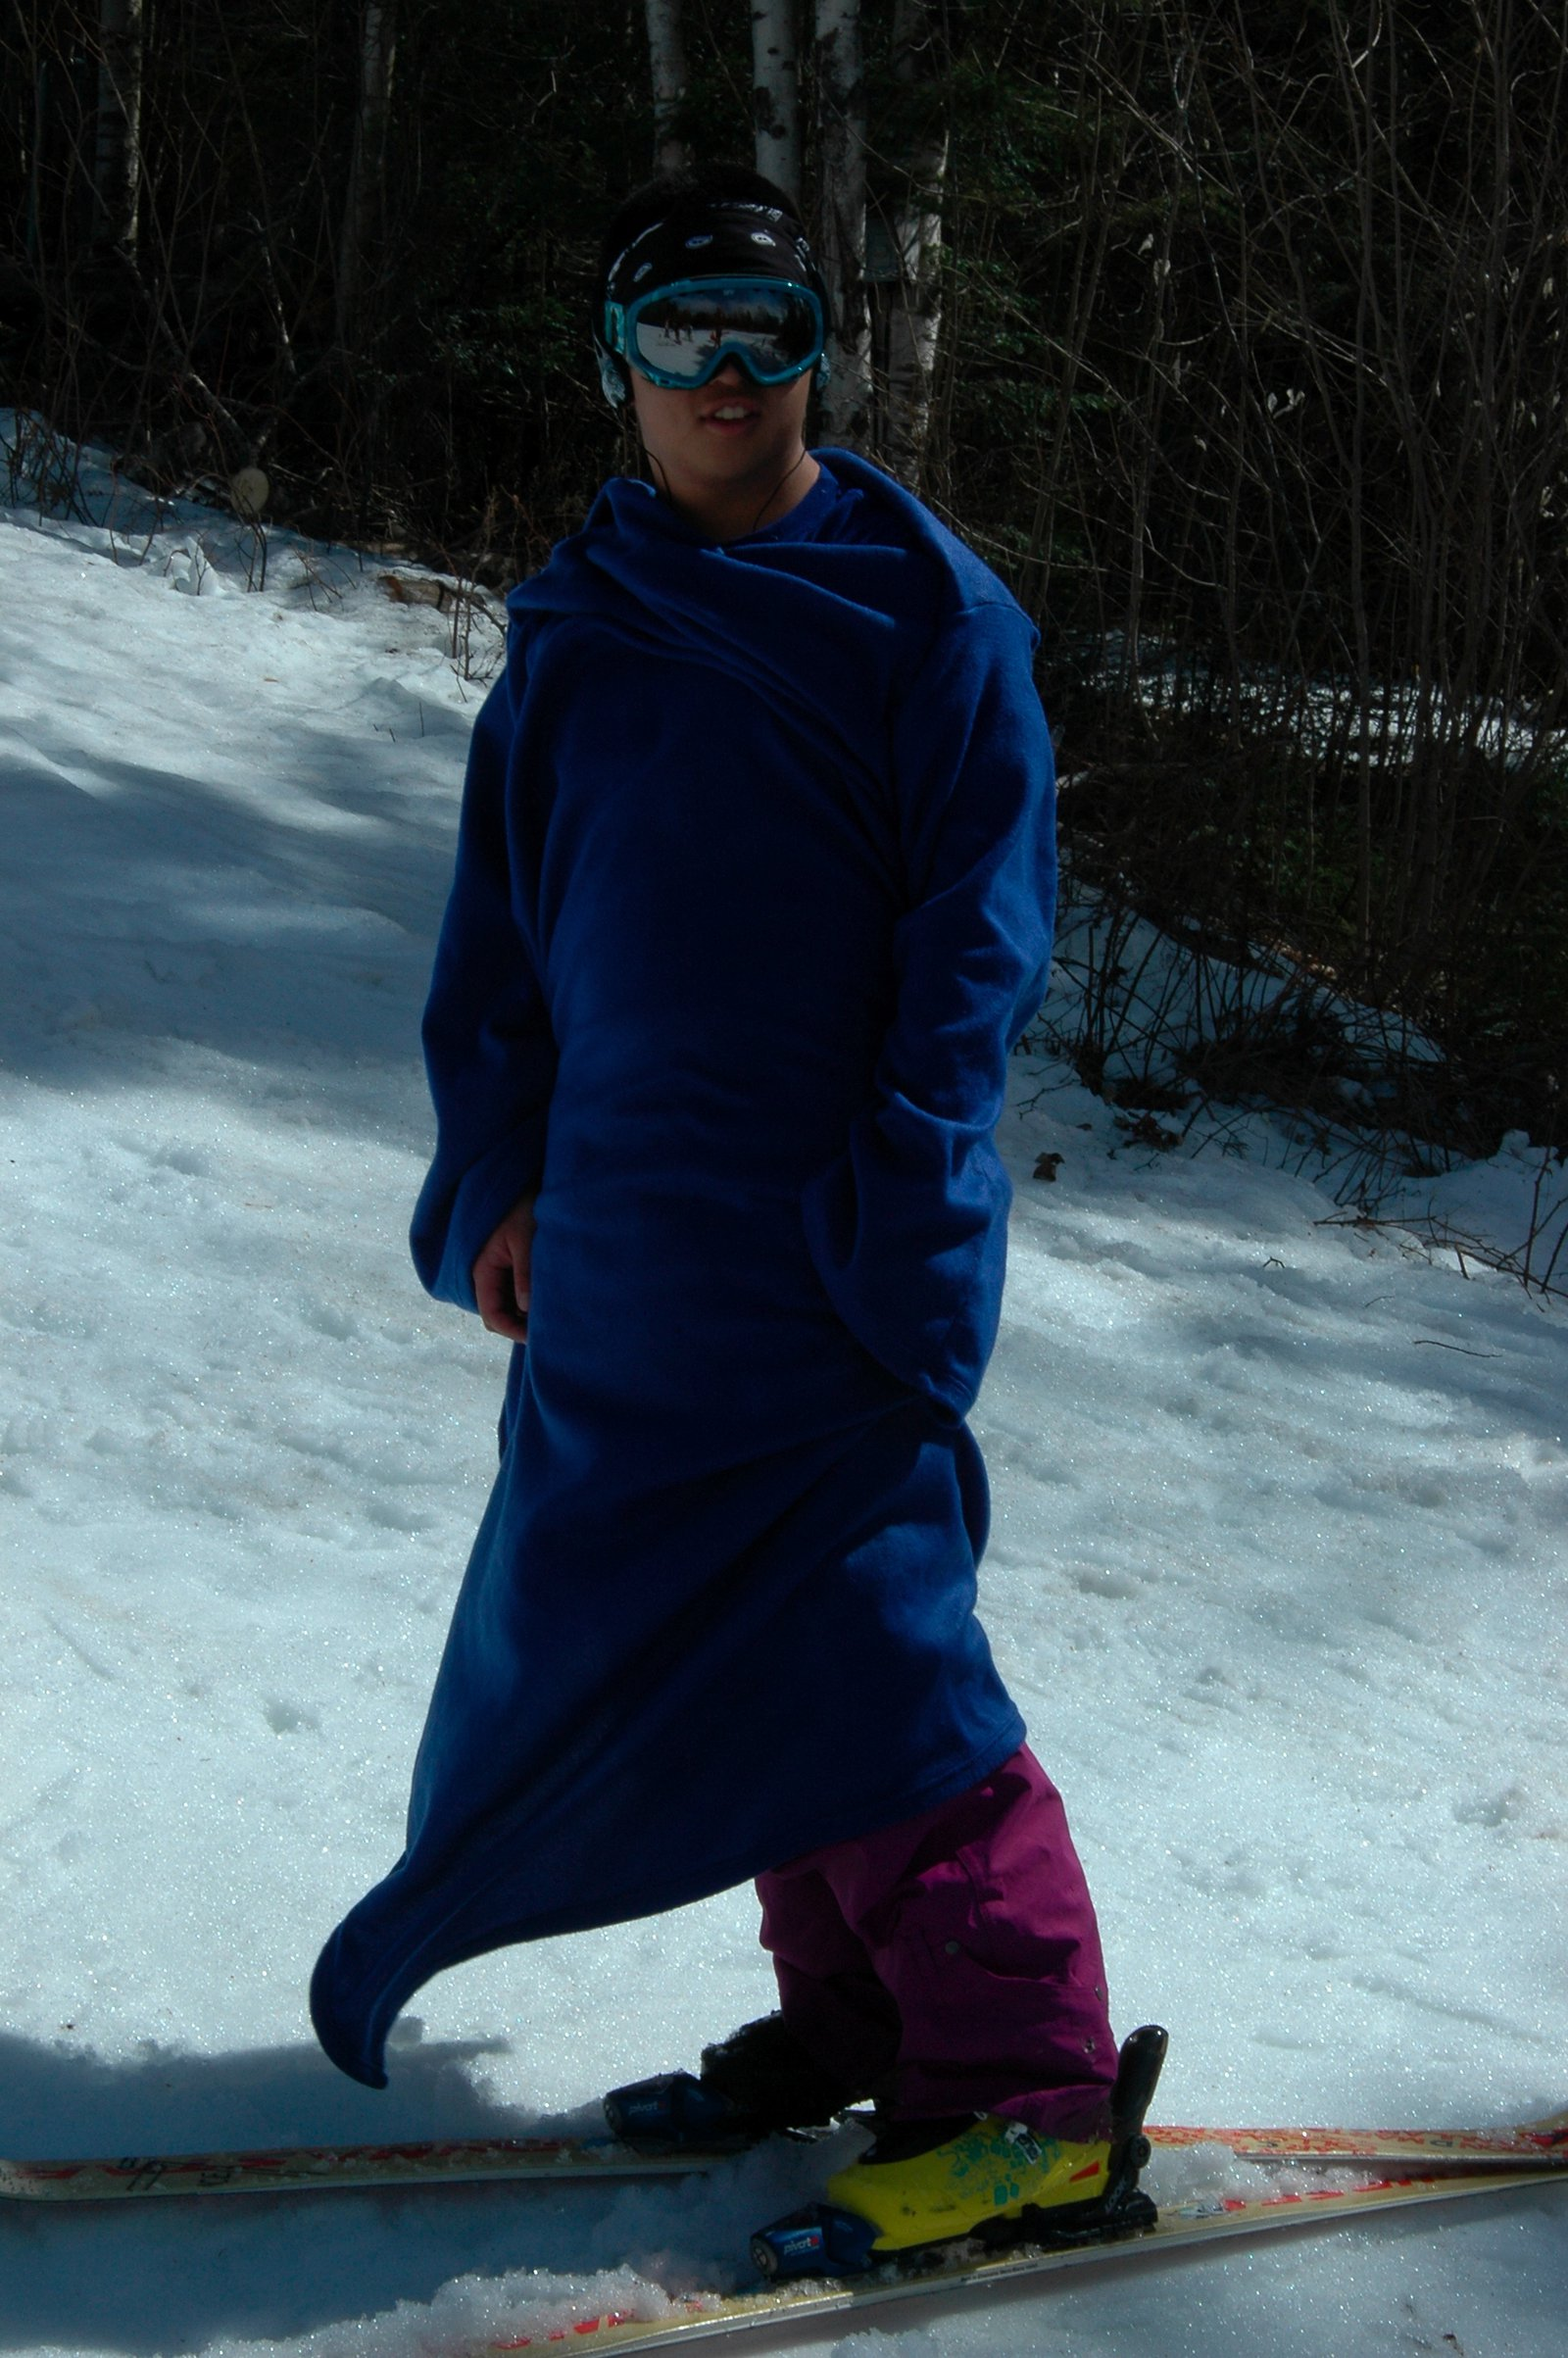 Skiing in a Snuggie